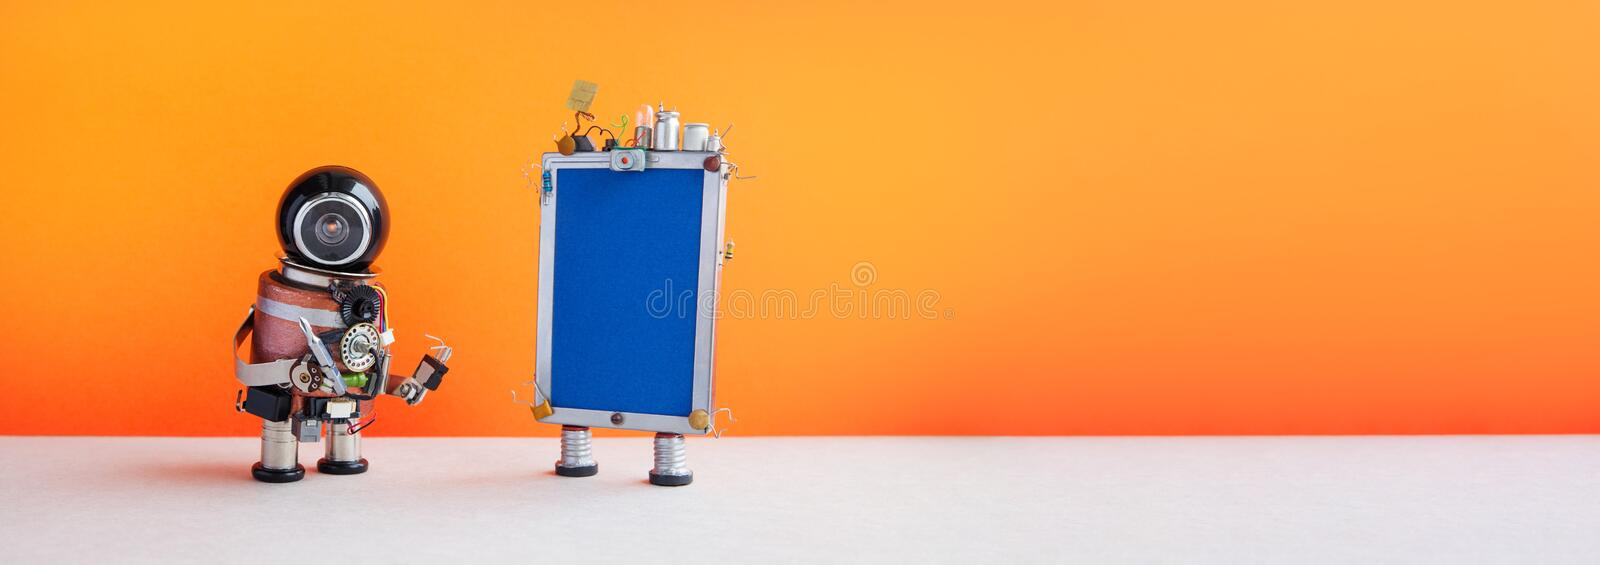 Robotic helpline customer service call center operator concept. Friendly robot assistant with modern phone on orange. Background. copy space royalty free stock photography